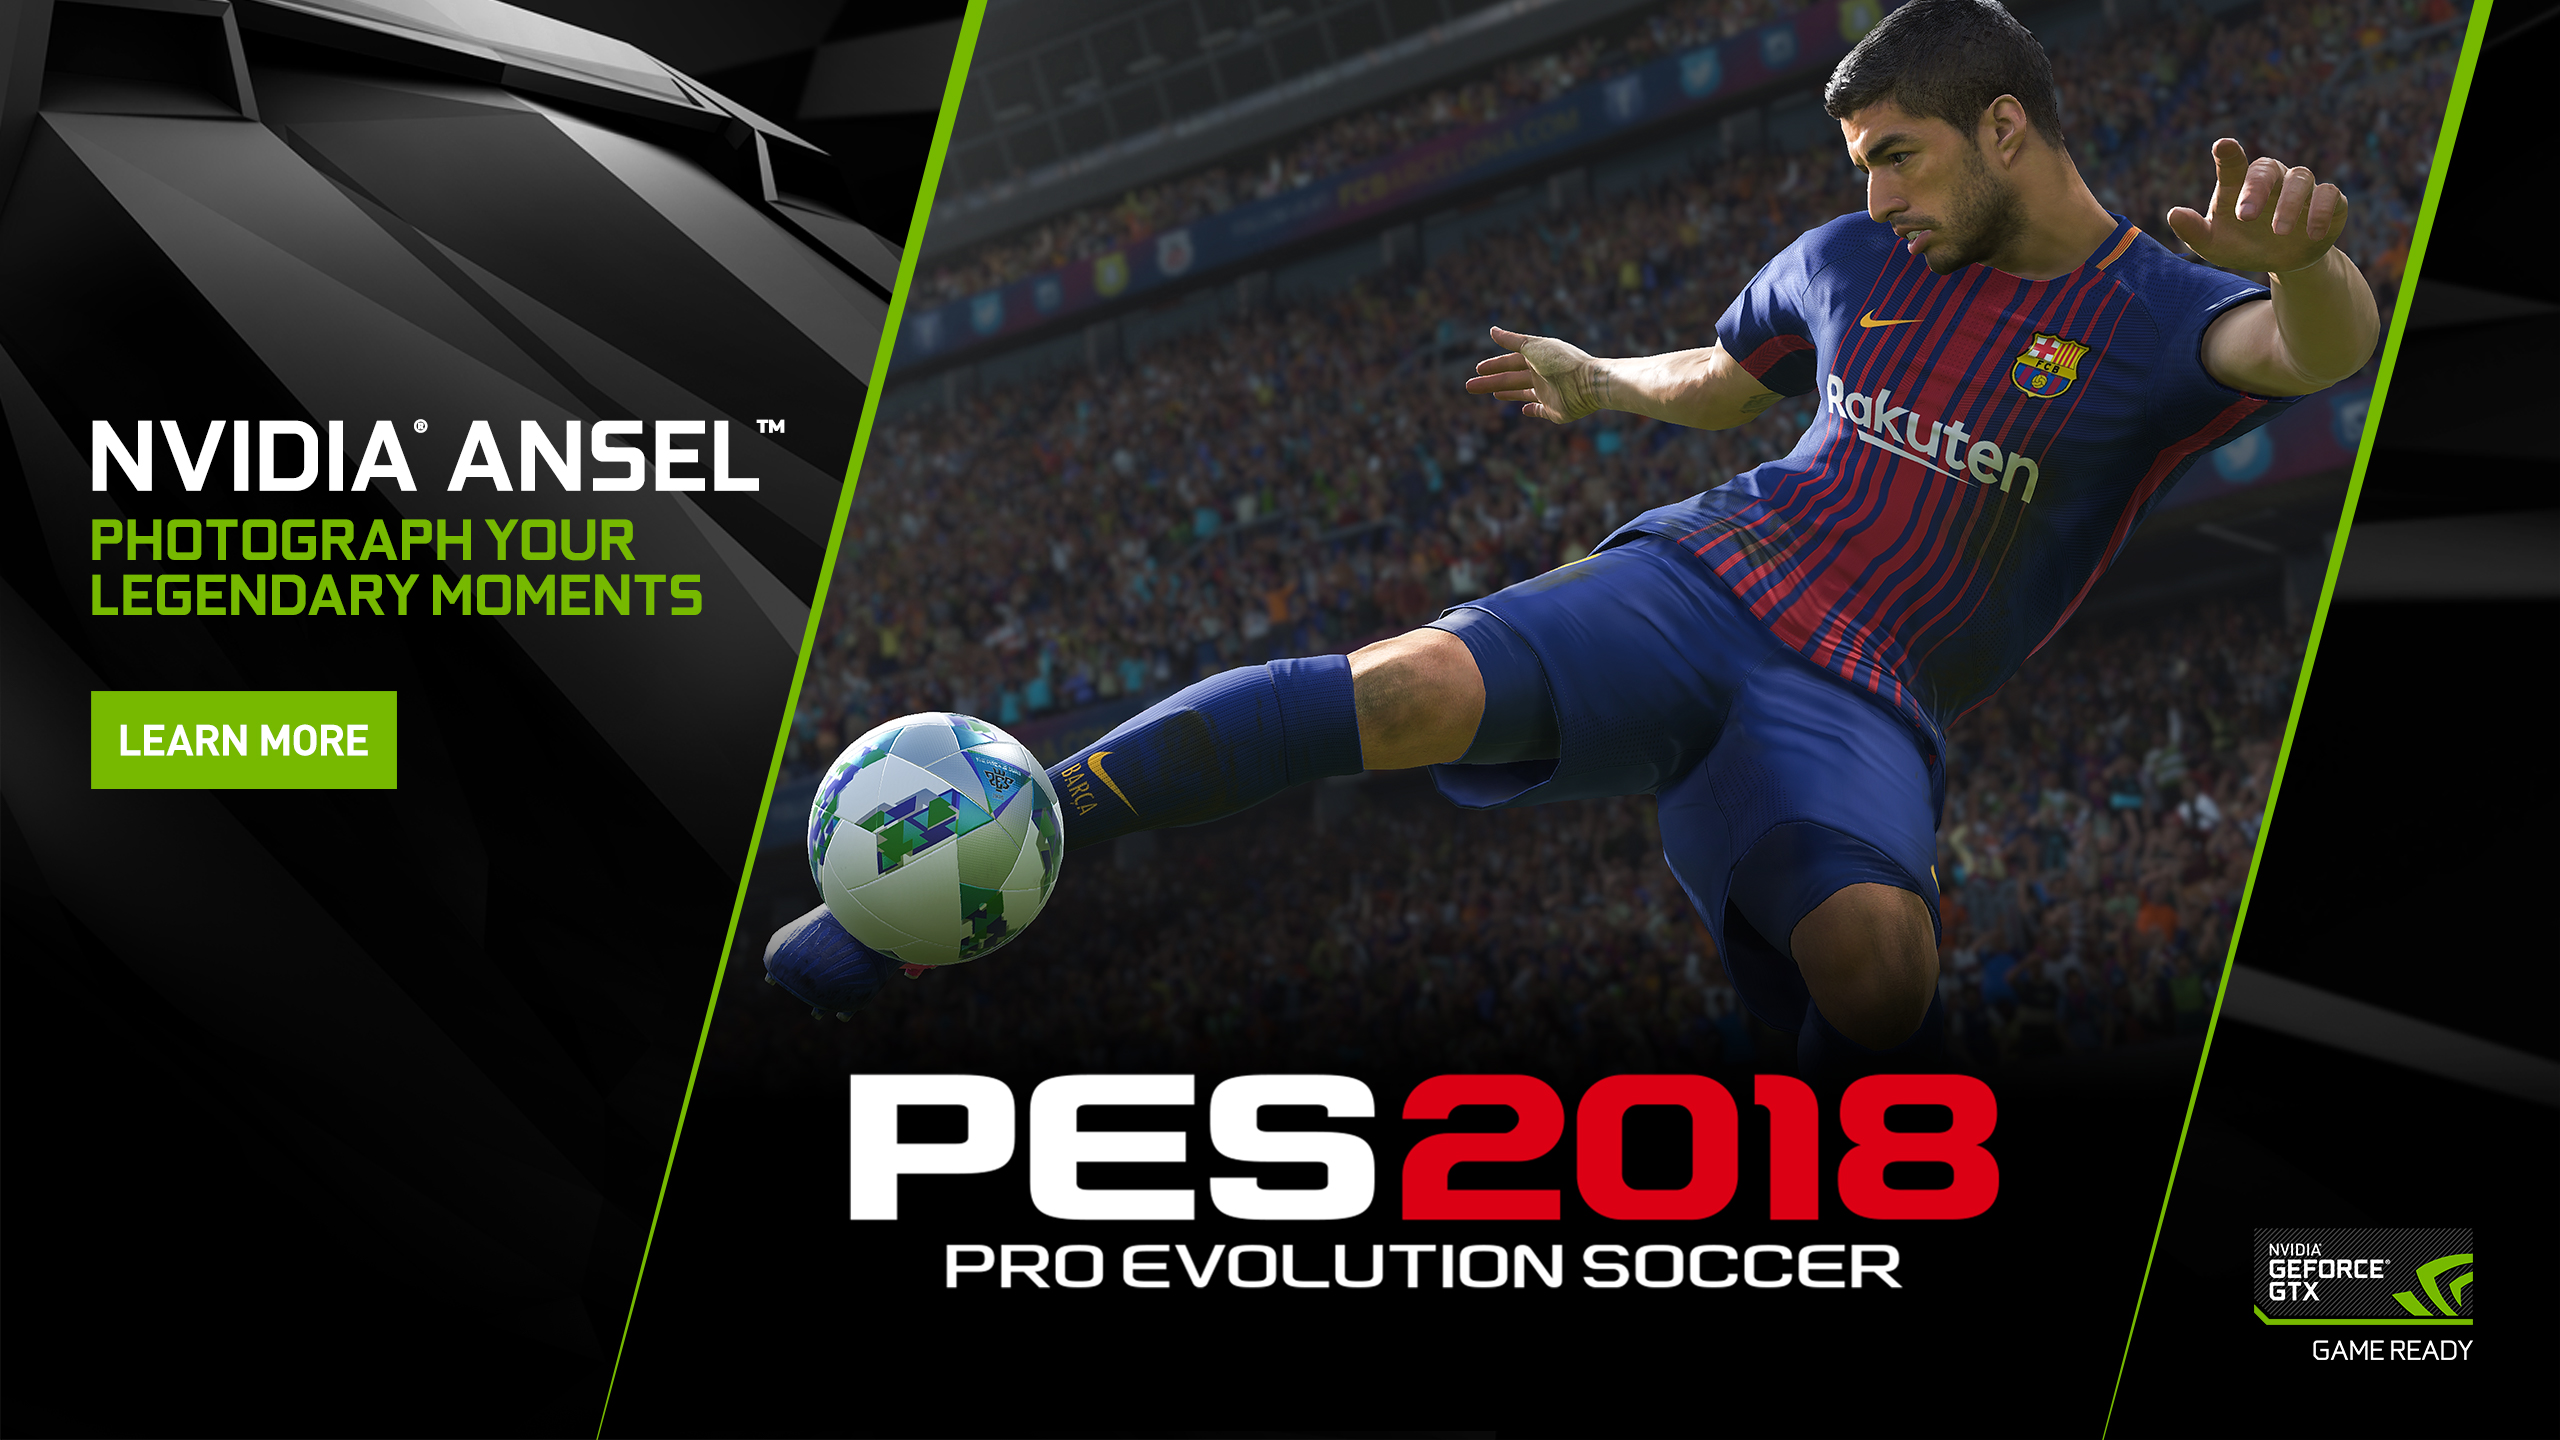 Pro Evolution Soccer 2018 Capture The Beautiful Game From 2560x1440